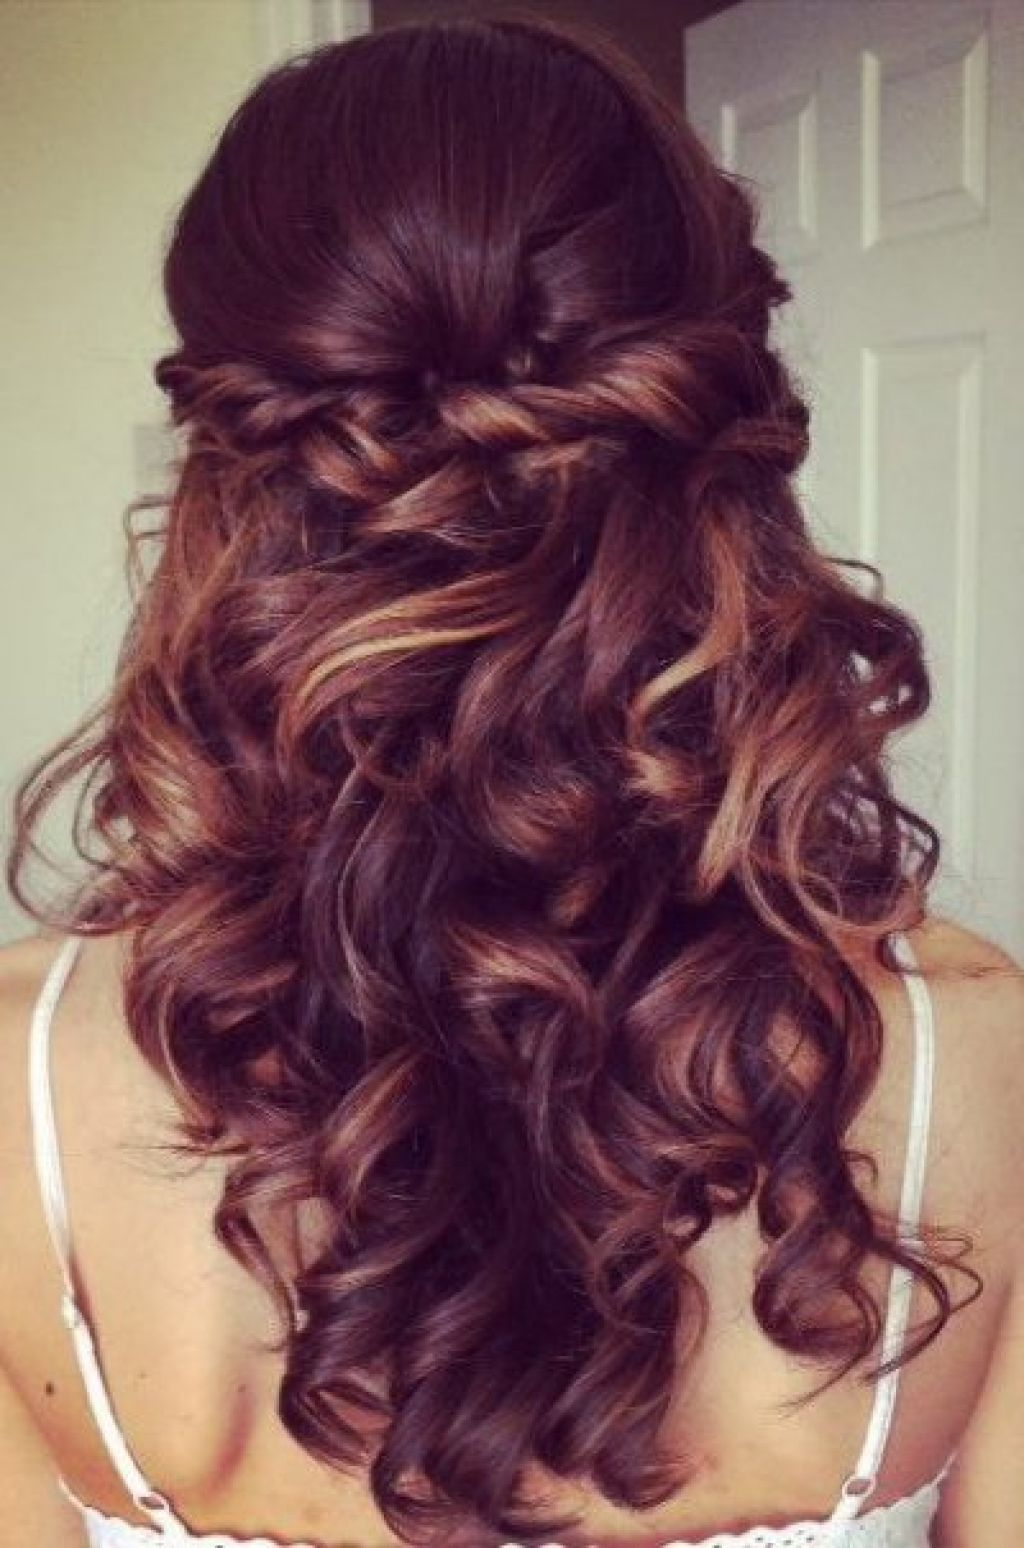 Curly Hairstyle : Prom Hairstyles For Medium Curly Hair Updo Mixed Regarding Latest Curly Medium Hairstyles For Prom (View 7 of 20)